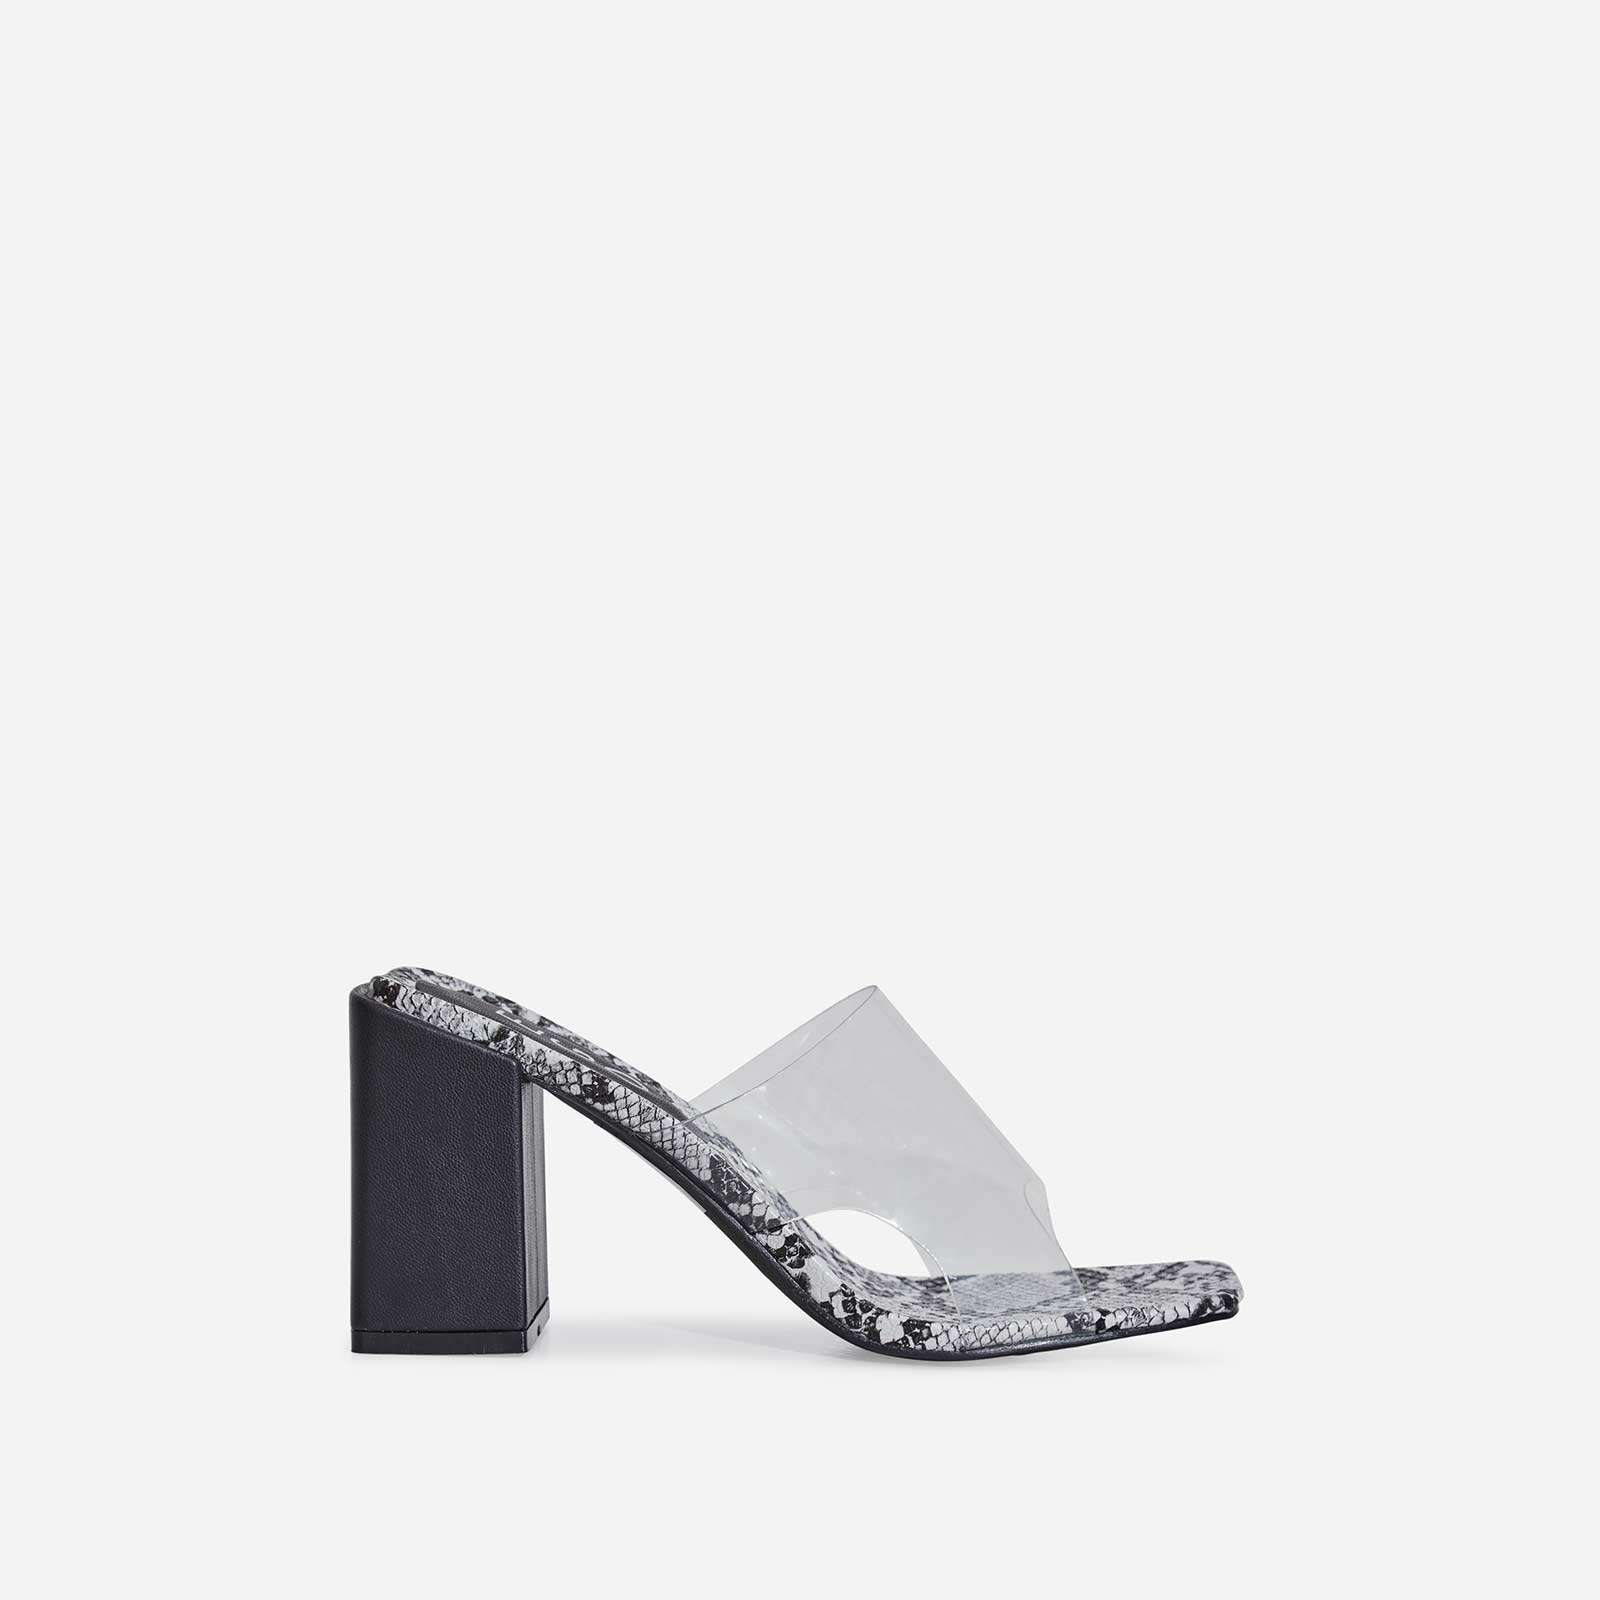 Reaction Perspex Peep Toe Midi Block Heel Black Snake Print Faux Leather